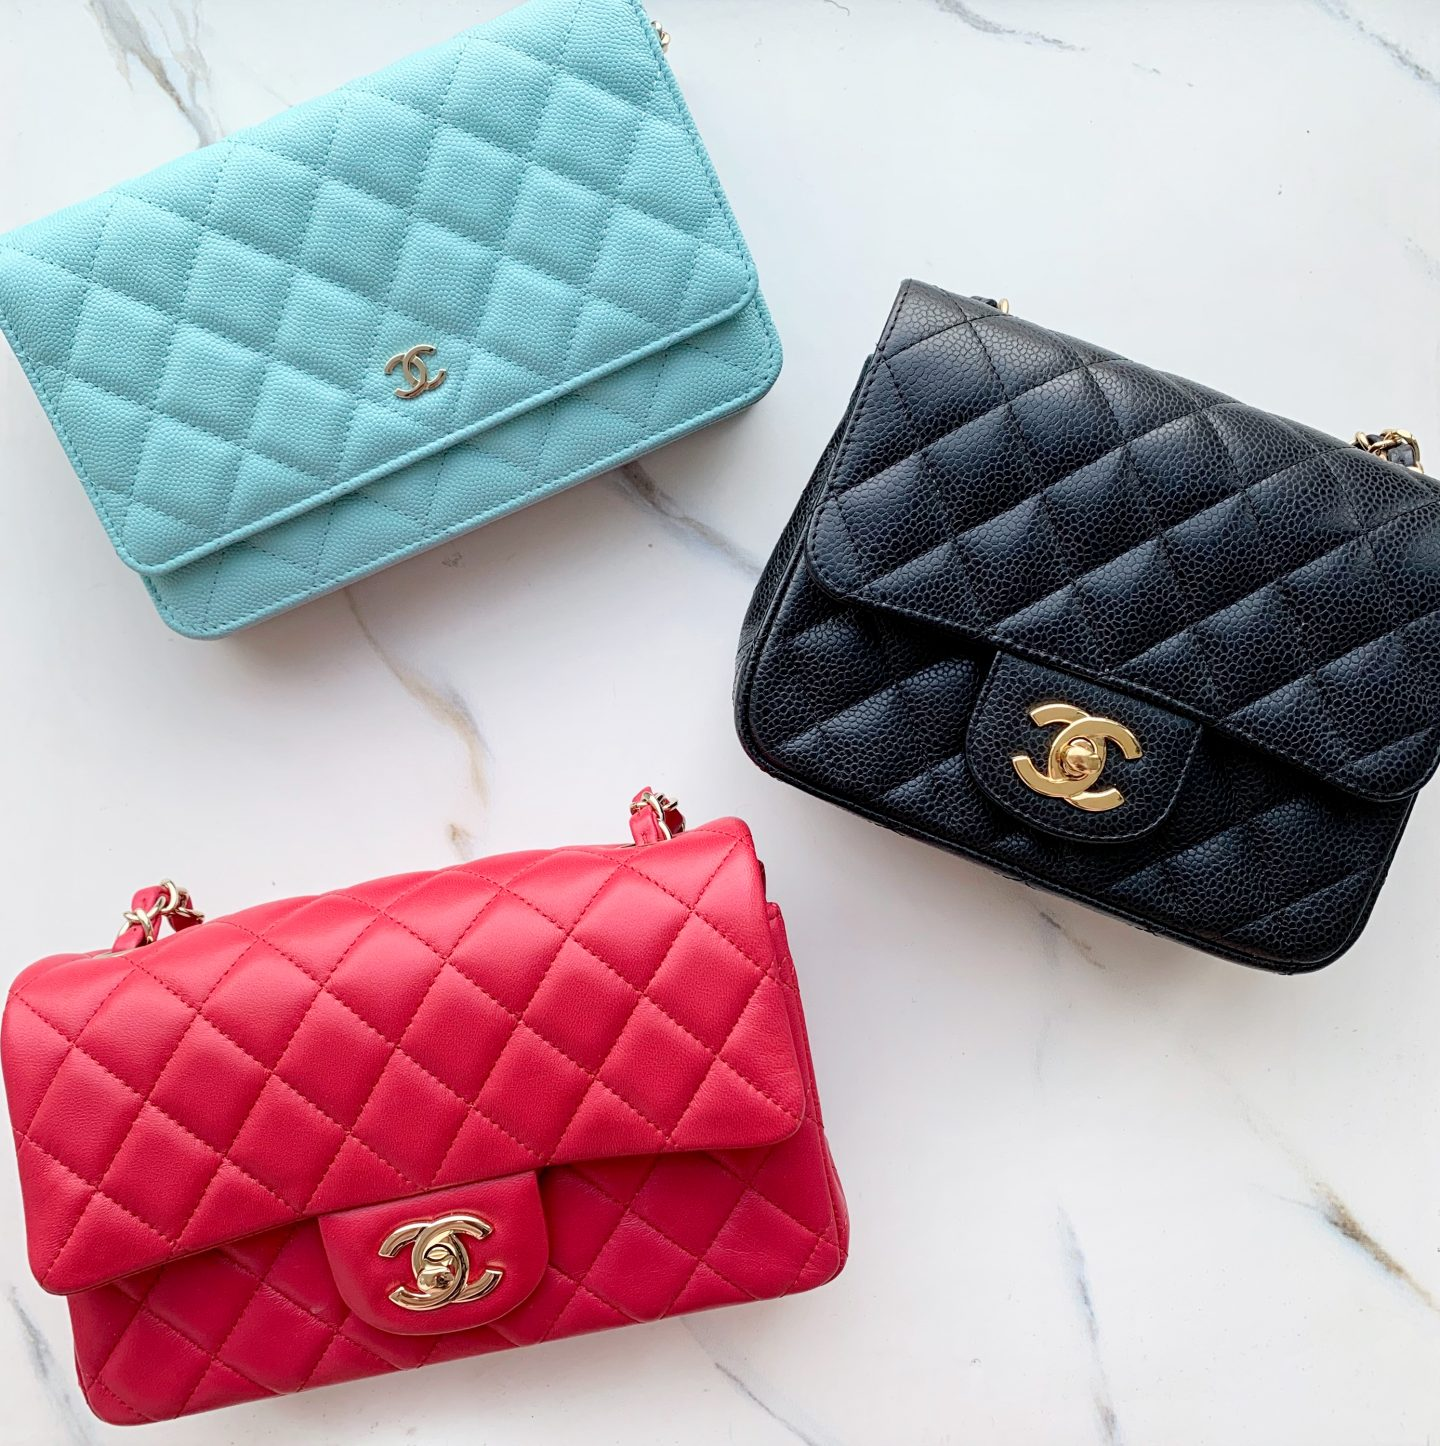 1c26b85ee6 The Best First Chanel Bag? - Chase Amie